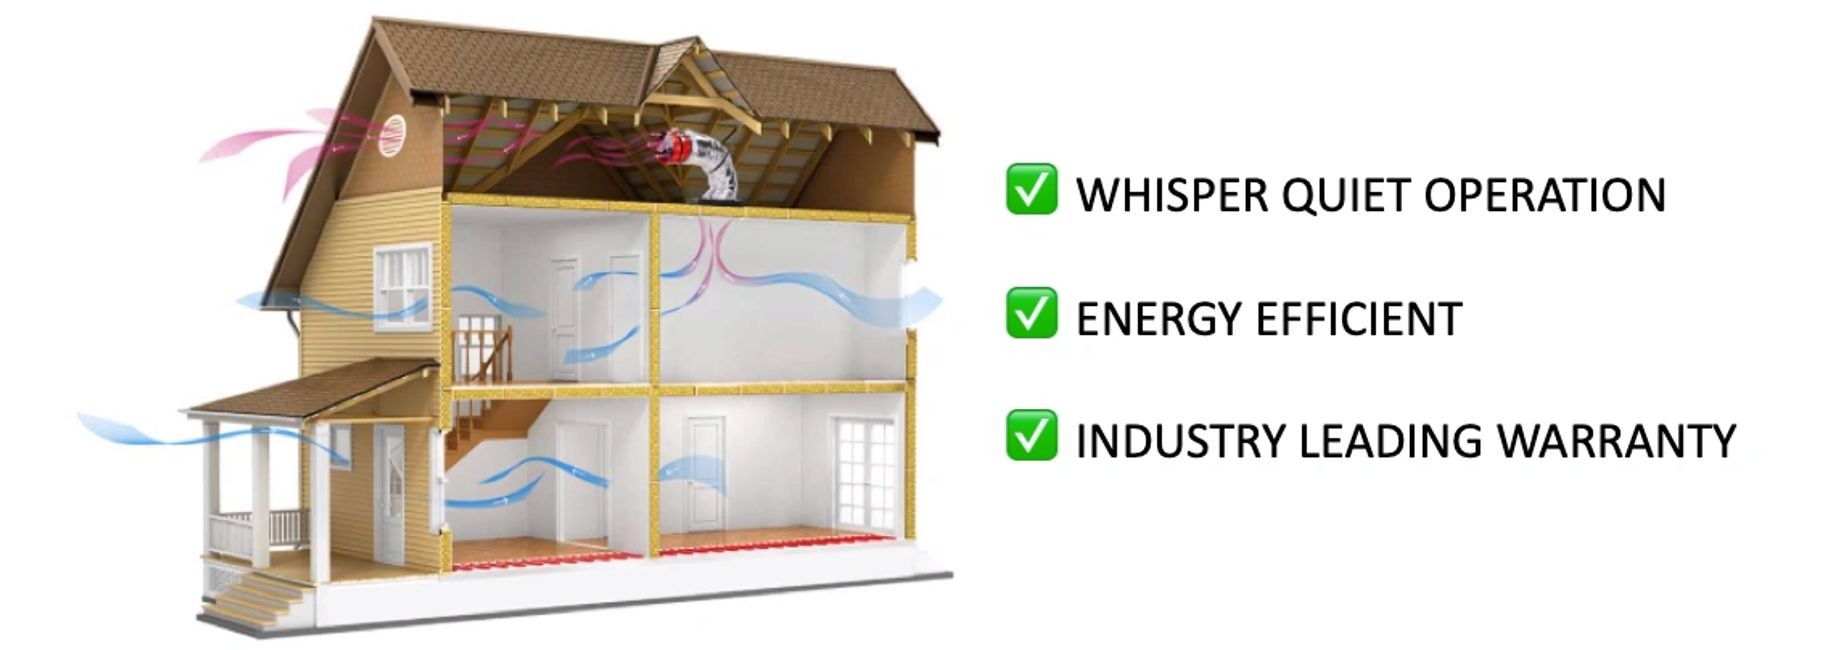 Whisper Quiet Operation, Energy Efficient, and Industry Leading Warranty